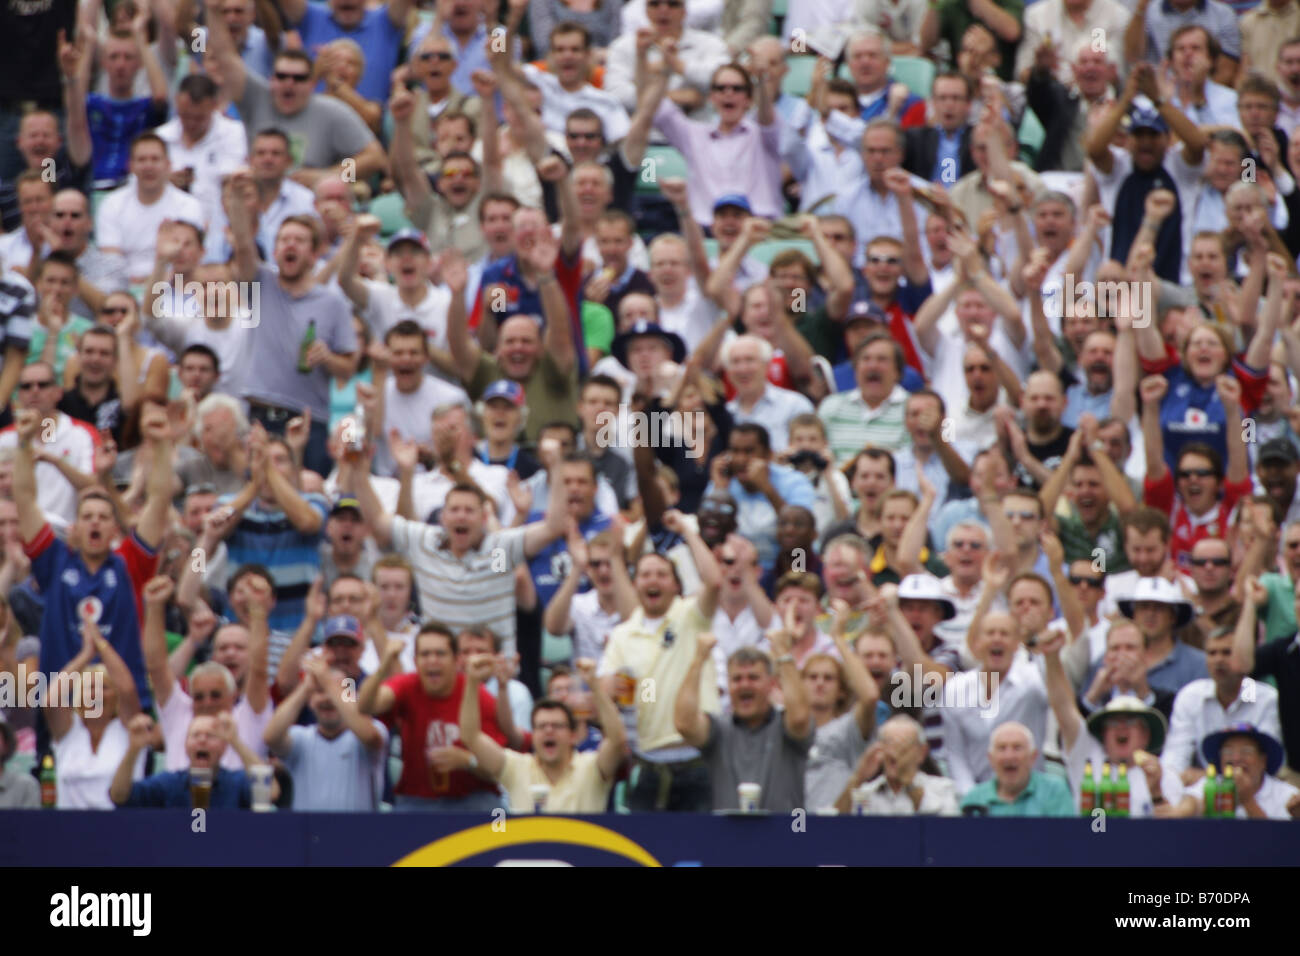 sport crowd spectators cricket fans supporters - Stock Image